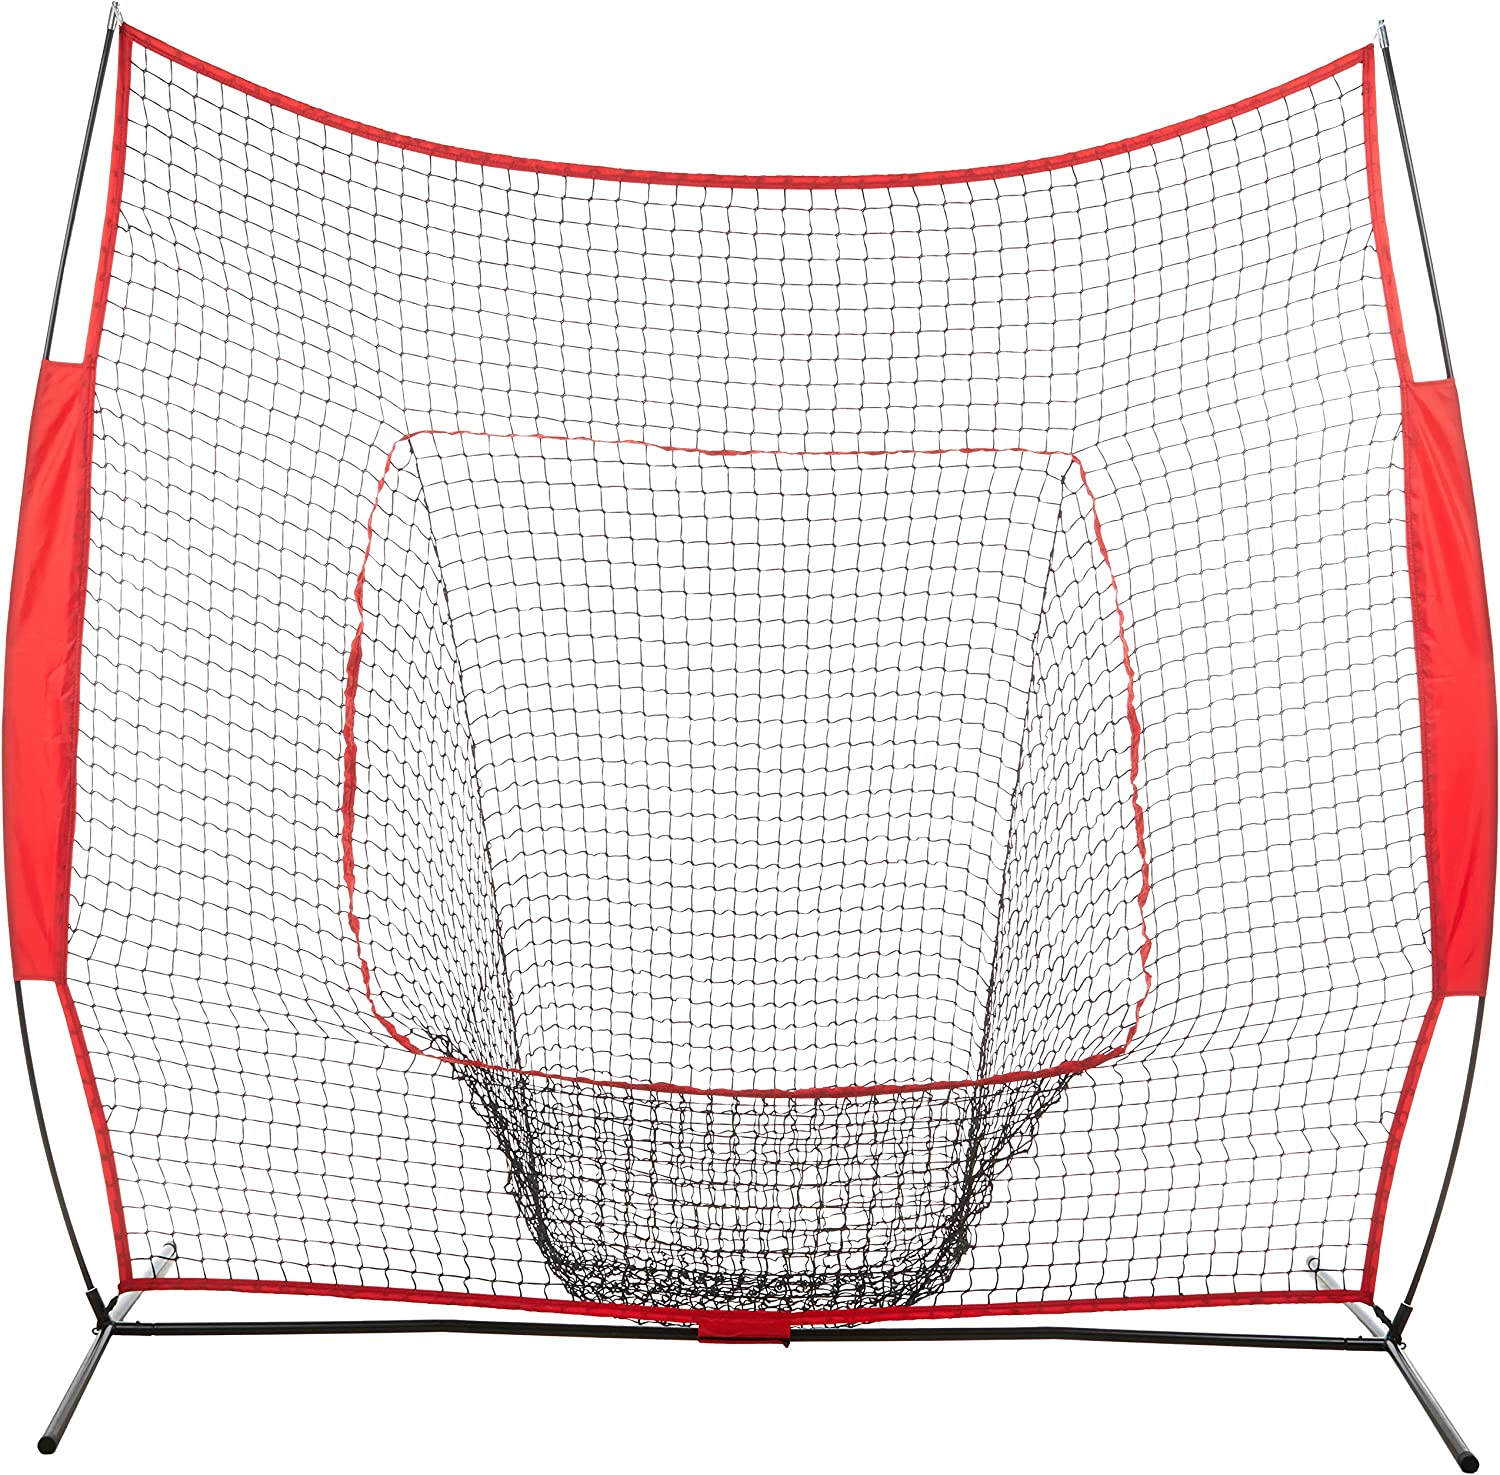 AmazonBasics Baseball Softball Hitting Pitching Batting Practice Net With Stand – 96 x 42 x 86 Inches, Red and Black